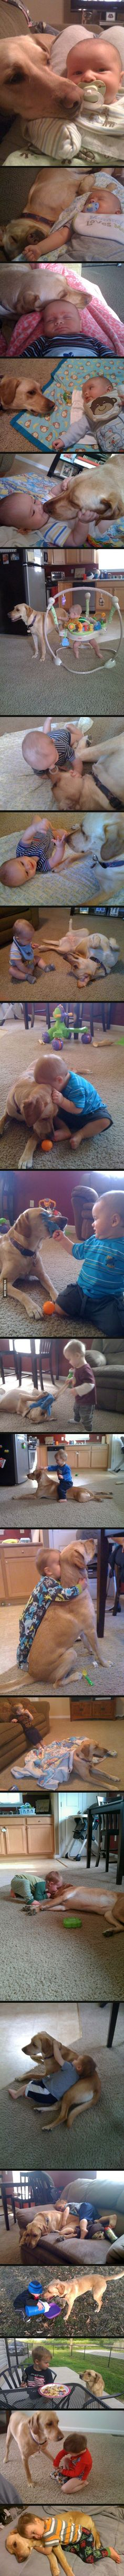 Omg this dog could be Opies twin. And Im pretty sure I have similar pics of Claira with Opie! So precious. Every kid needs a dog!